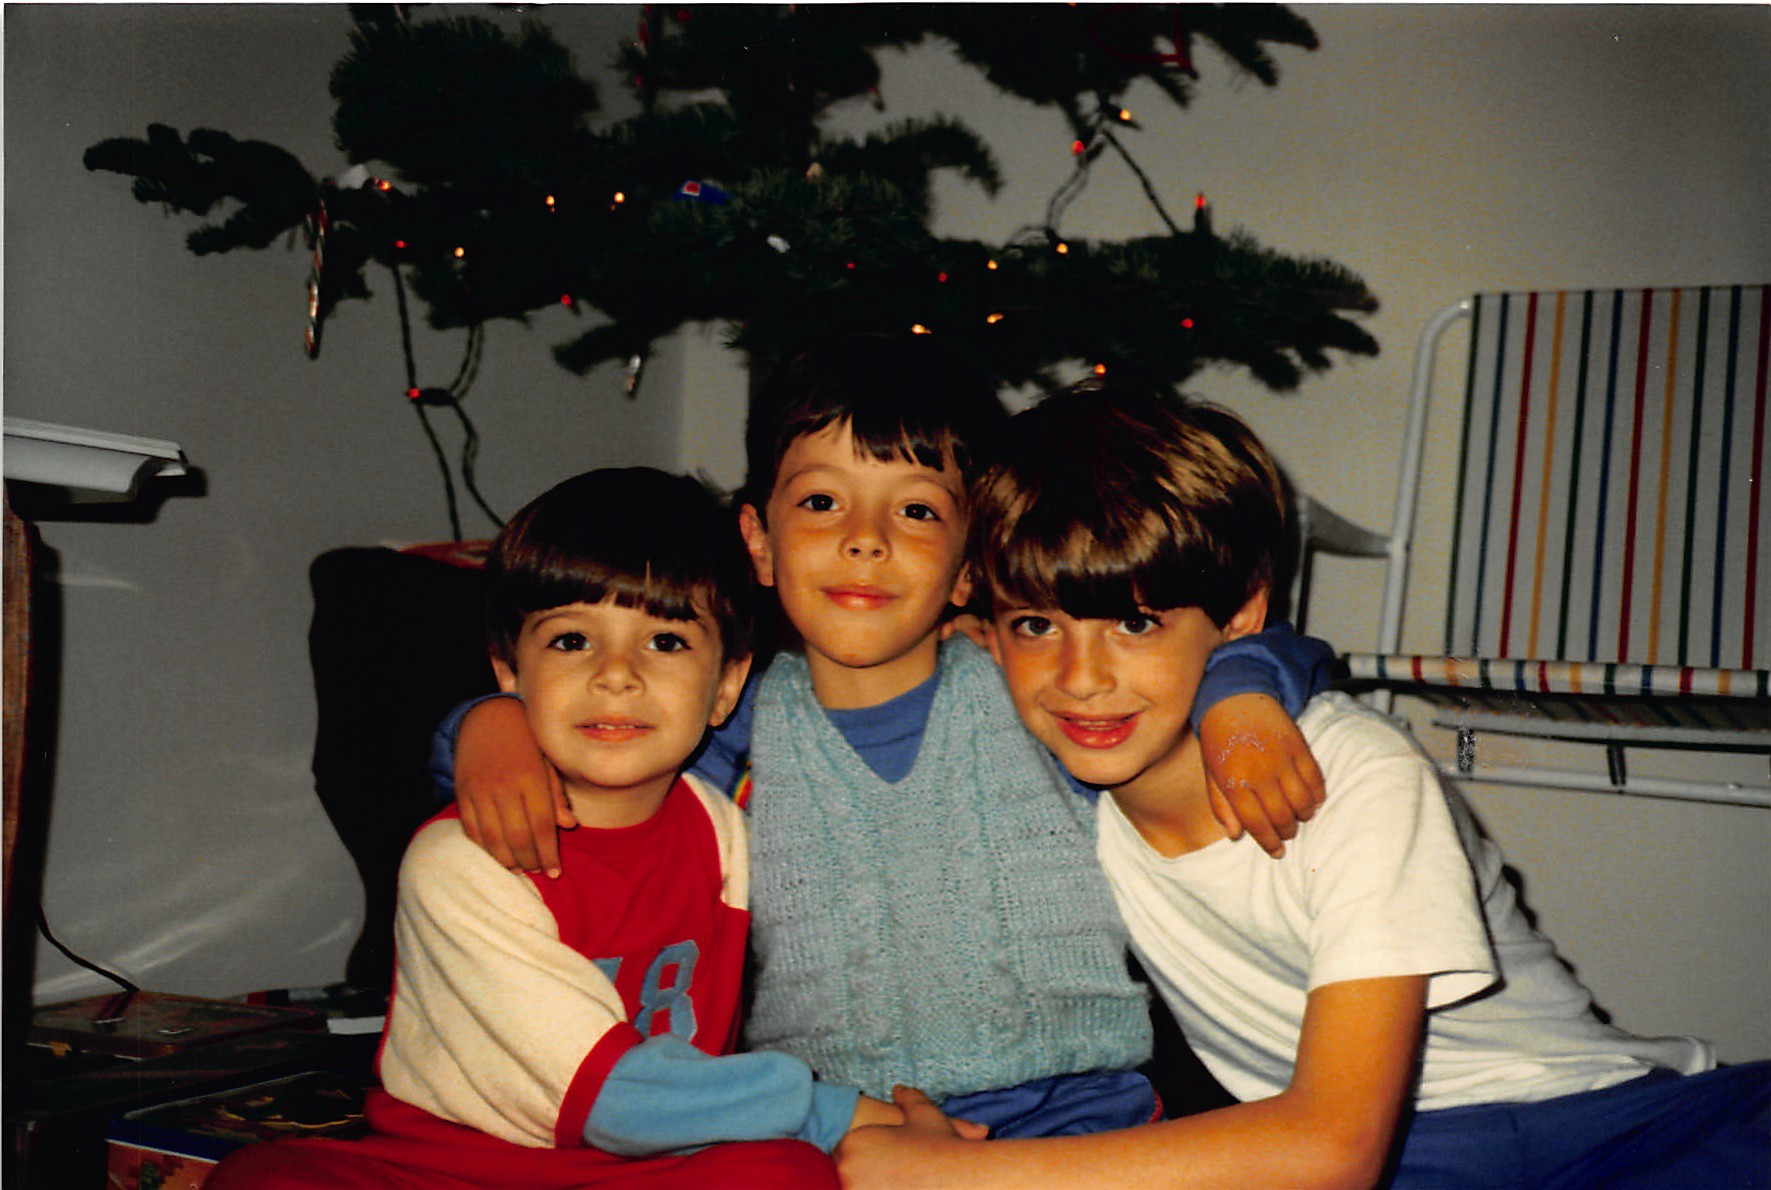 Three boys sit in front a sparely decorated Christmas Tree. The middle boy supports himself on the shoulders of the other two